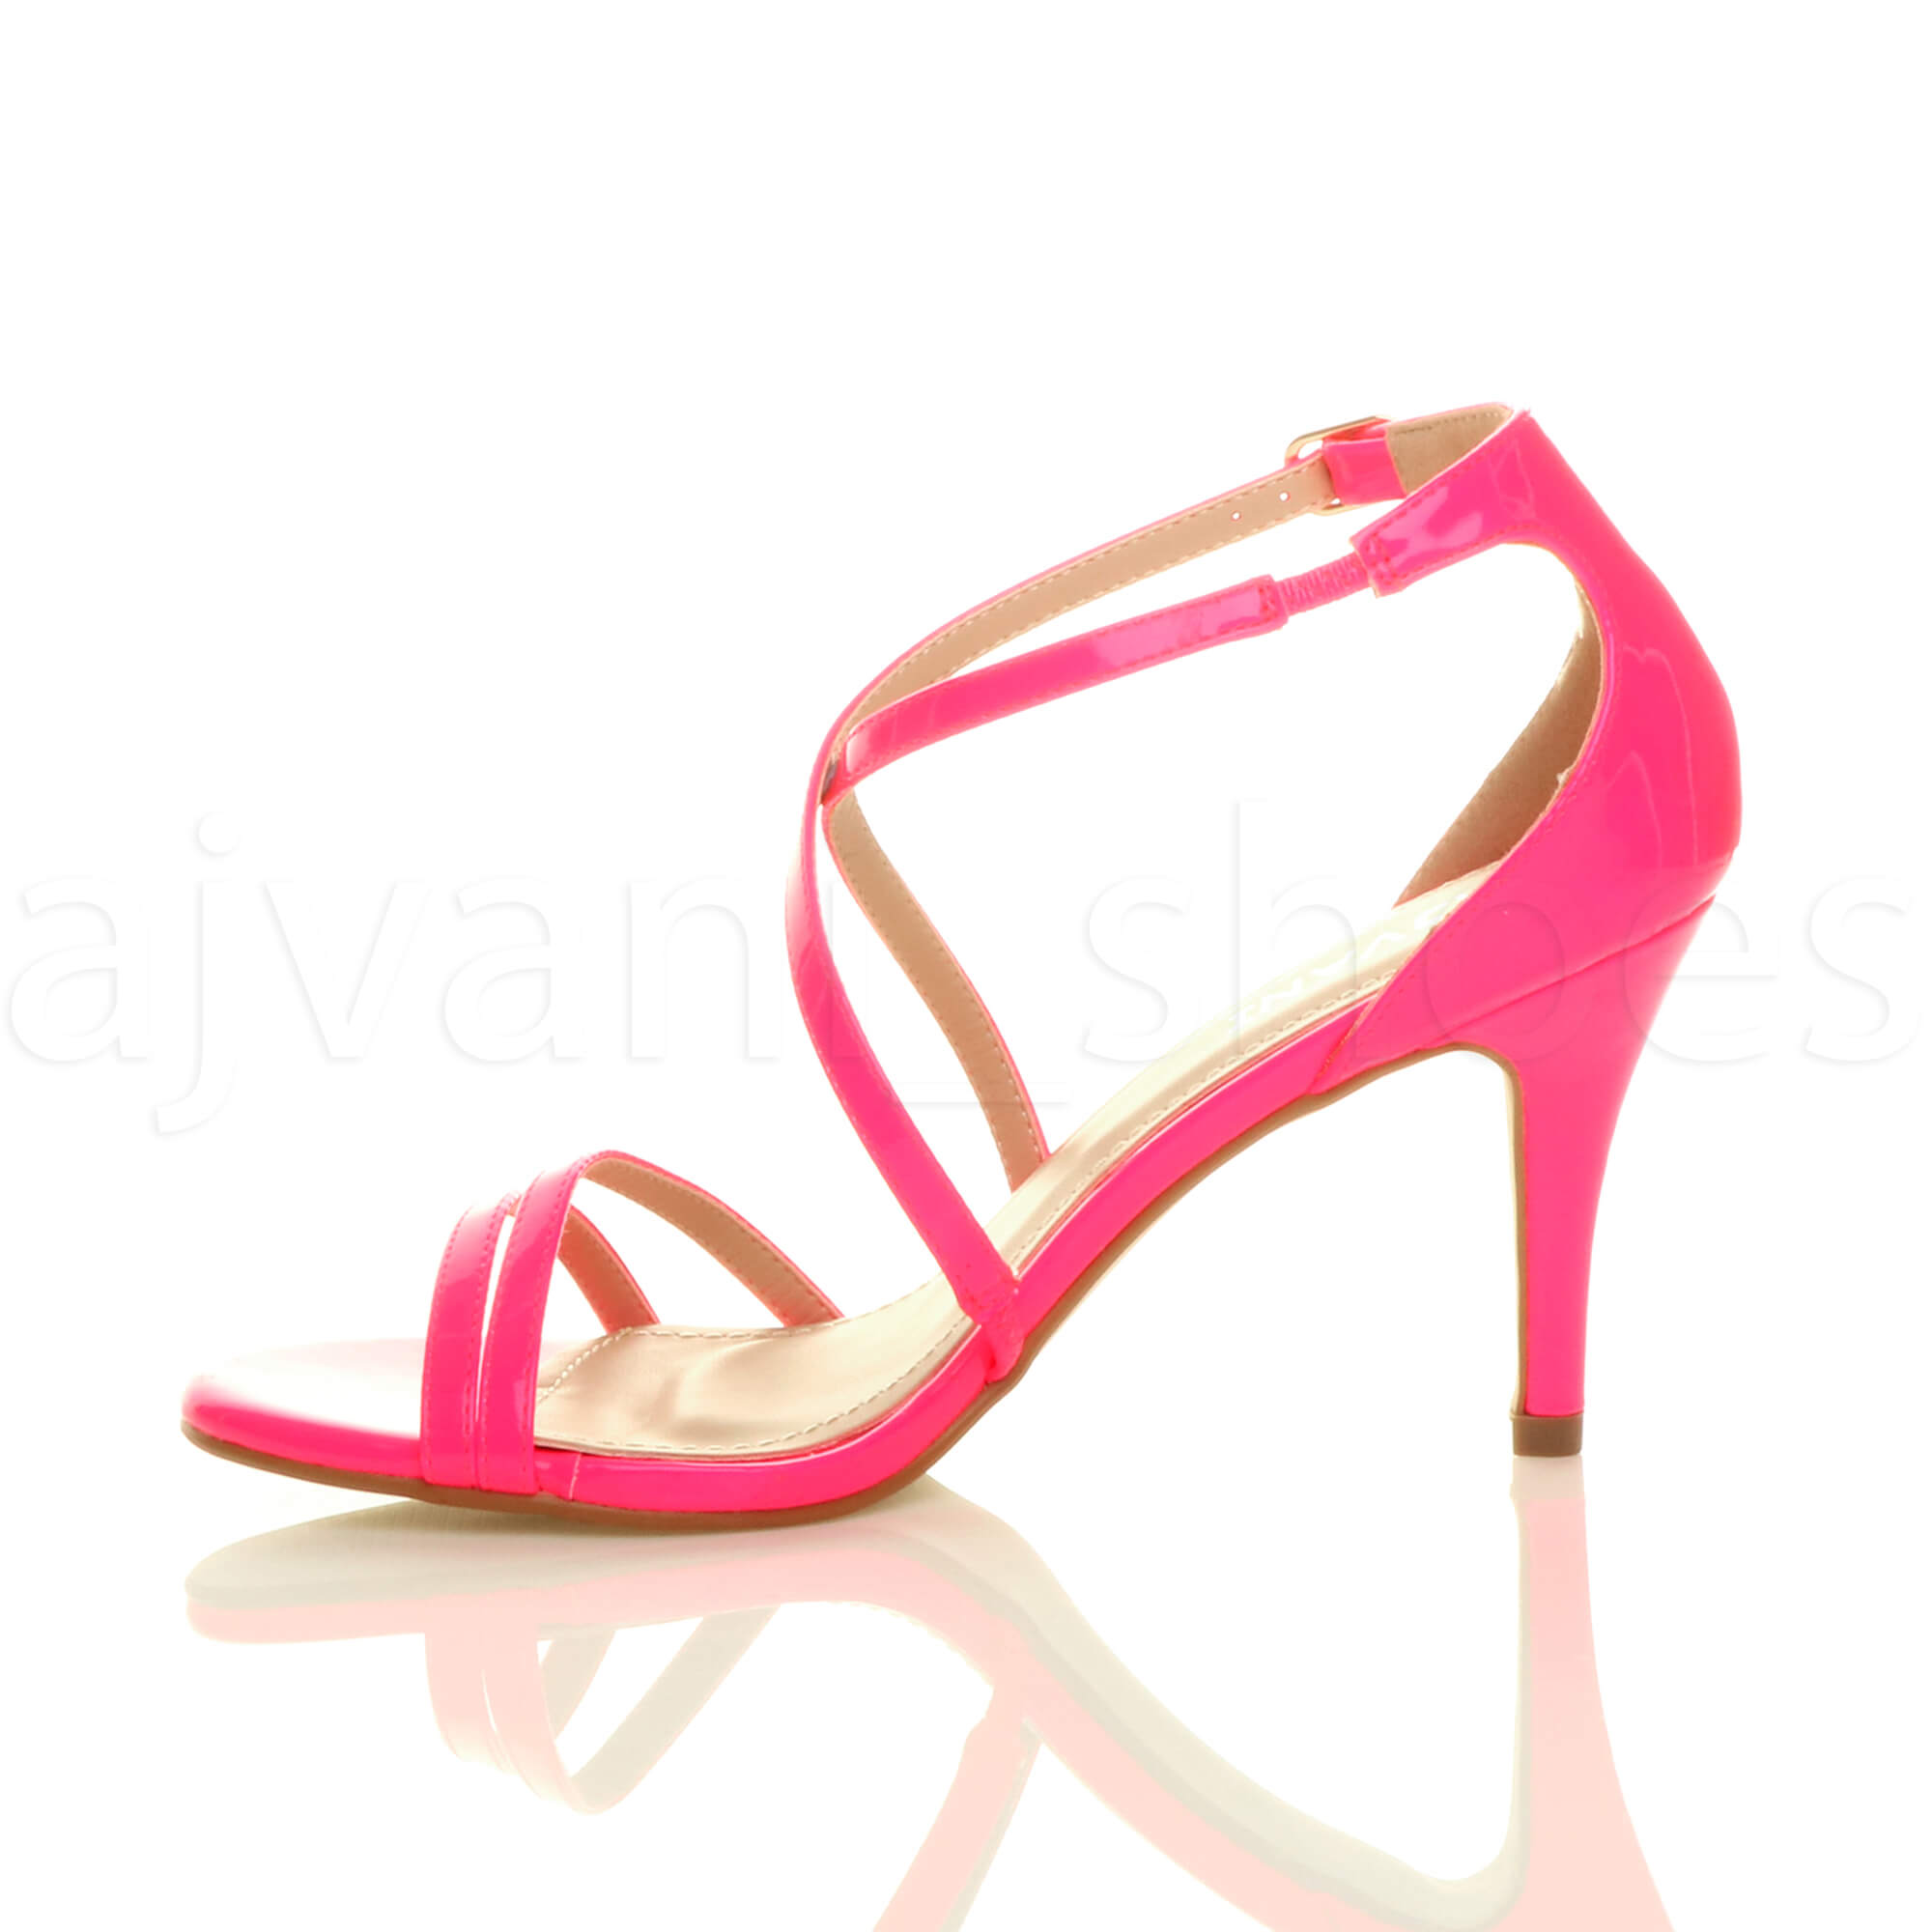 WOMENS-LADIES-MID-HIGH-HEEL-STRAPPY-CROSSOVER-WEDDING-PROM-SANDALS-SHOES-SIZE thumbnail 95